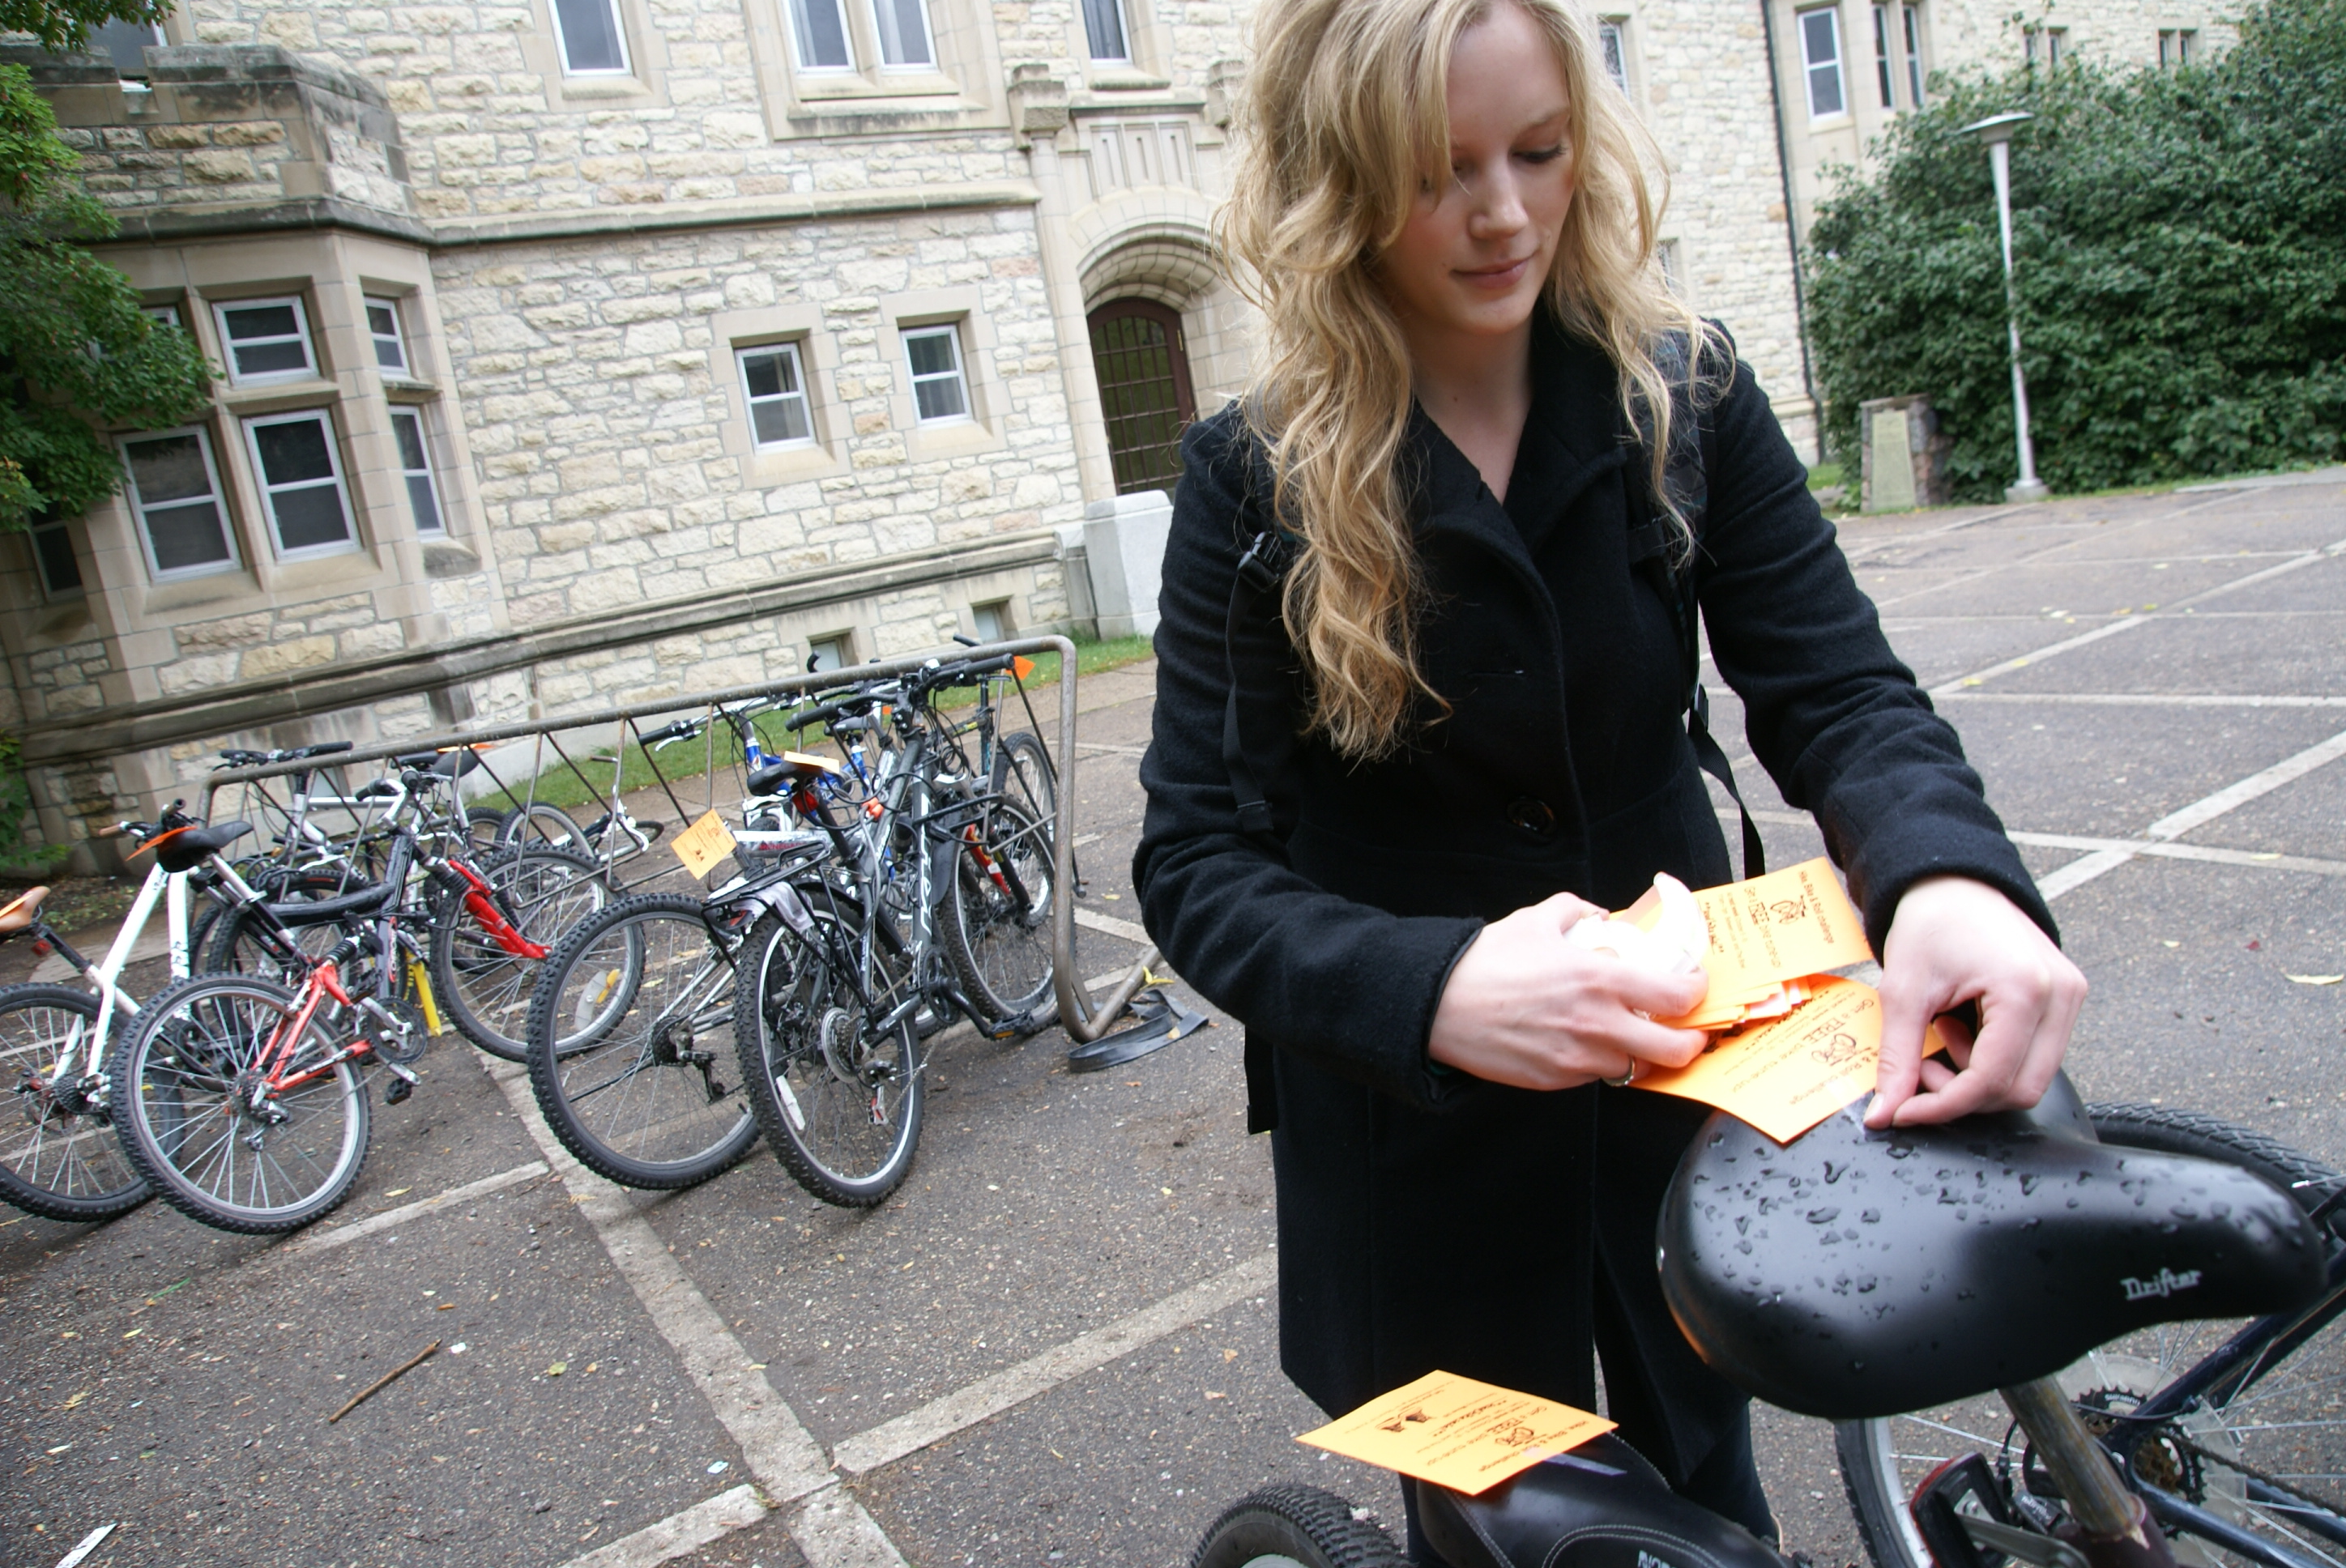 A Green Pack volunteer handing out bike notices on campus